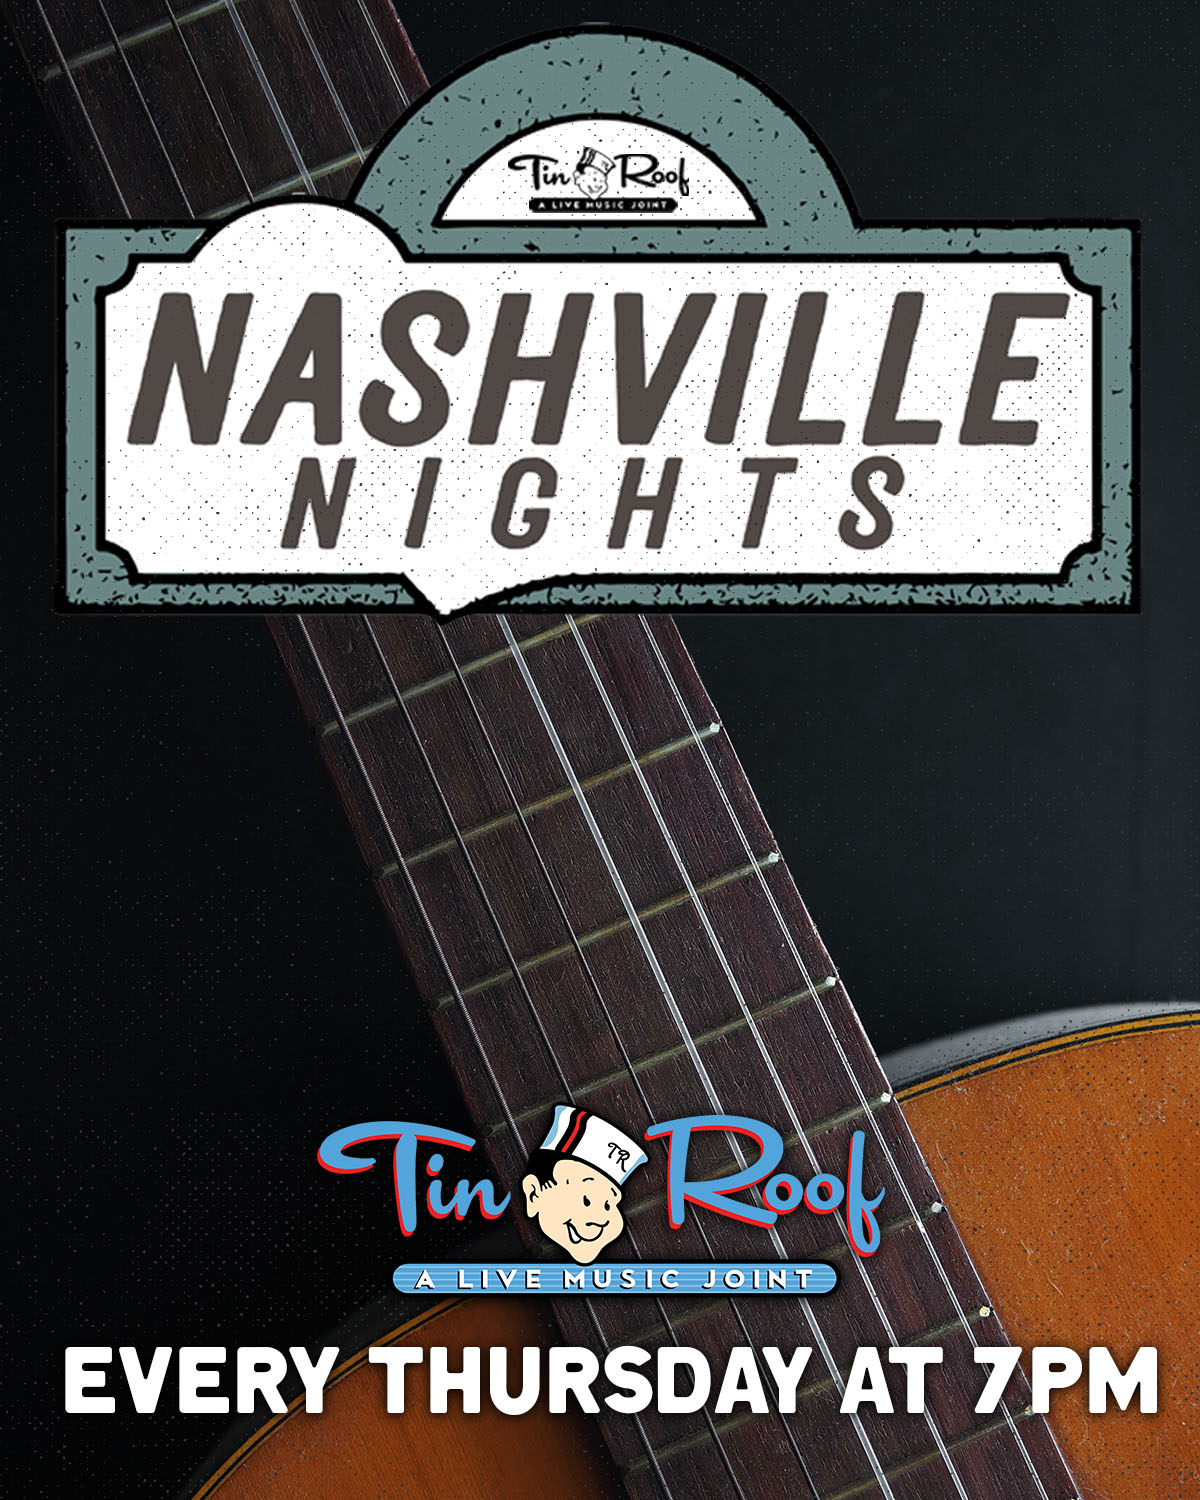 Nashville Nights featuring Michael Pace